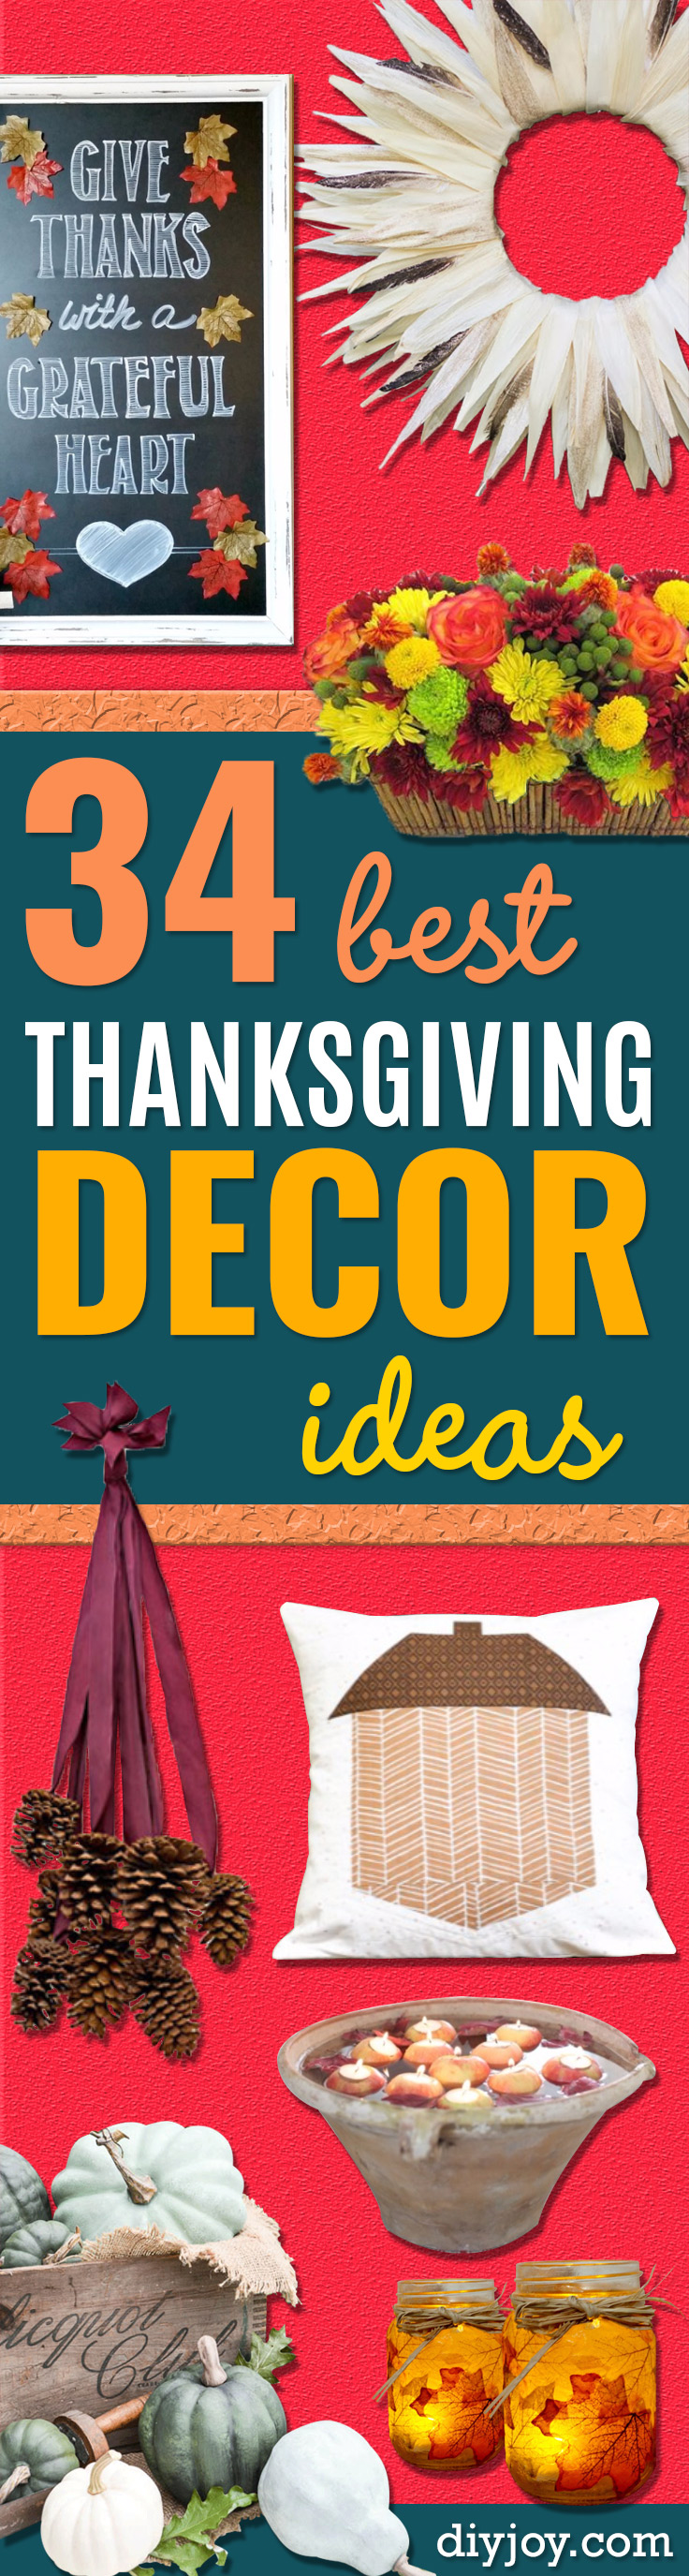 DIY Thanksgiving Decor Ideas - Fall Projects and Crafts for Thanksgiving Dinner Centerpieces, Vases, Arrangements With Leaves and Pumpkins - Easy and Cheap Crafts to Make for Home Decor